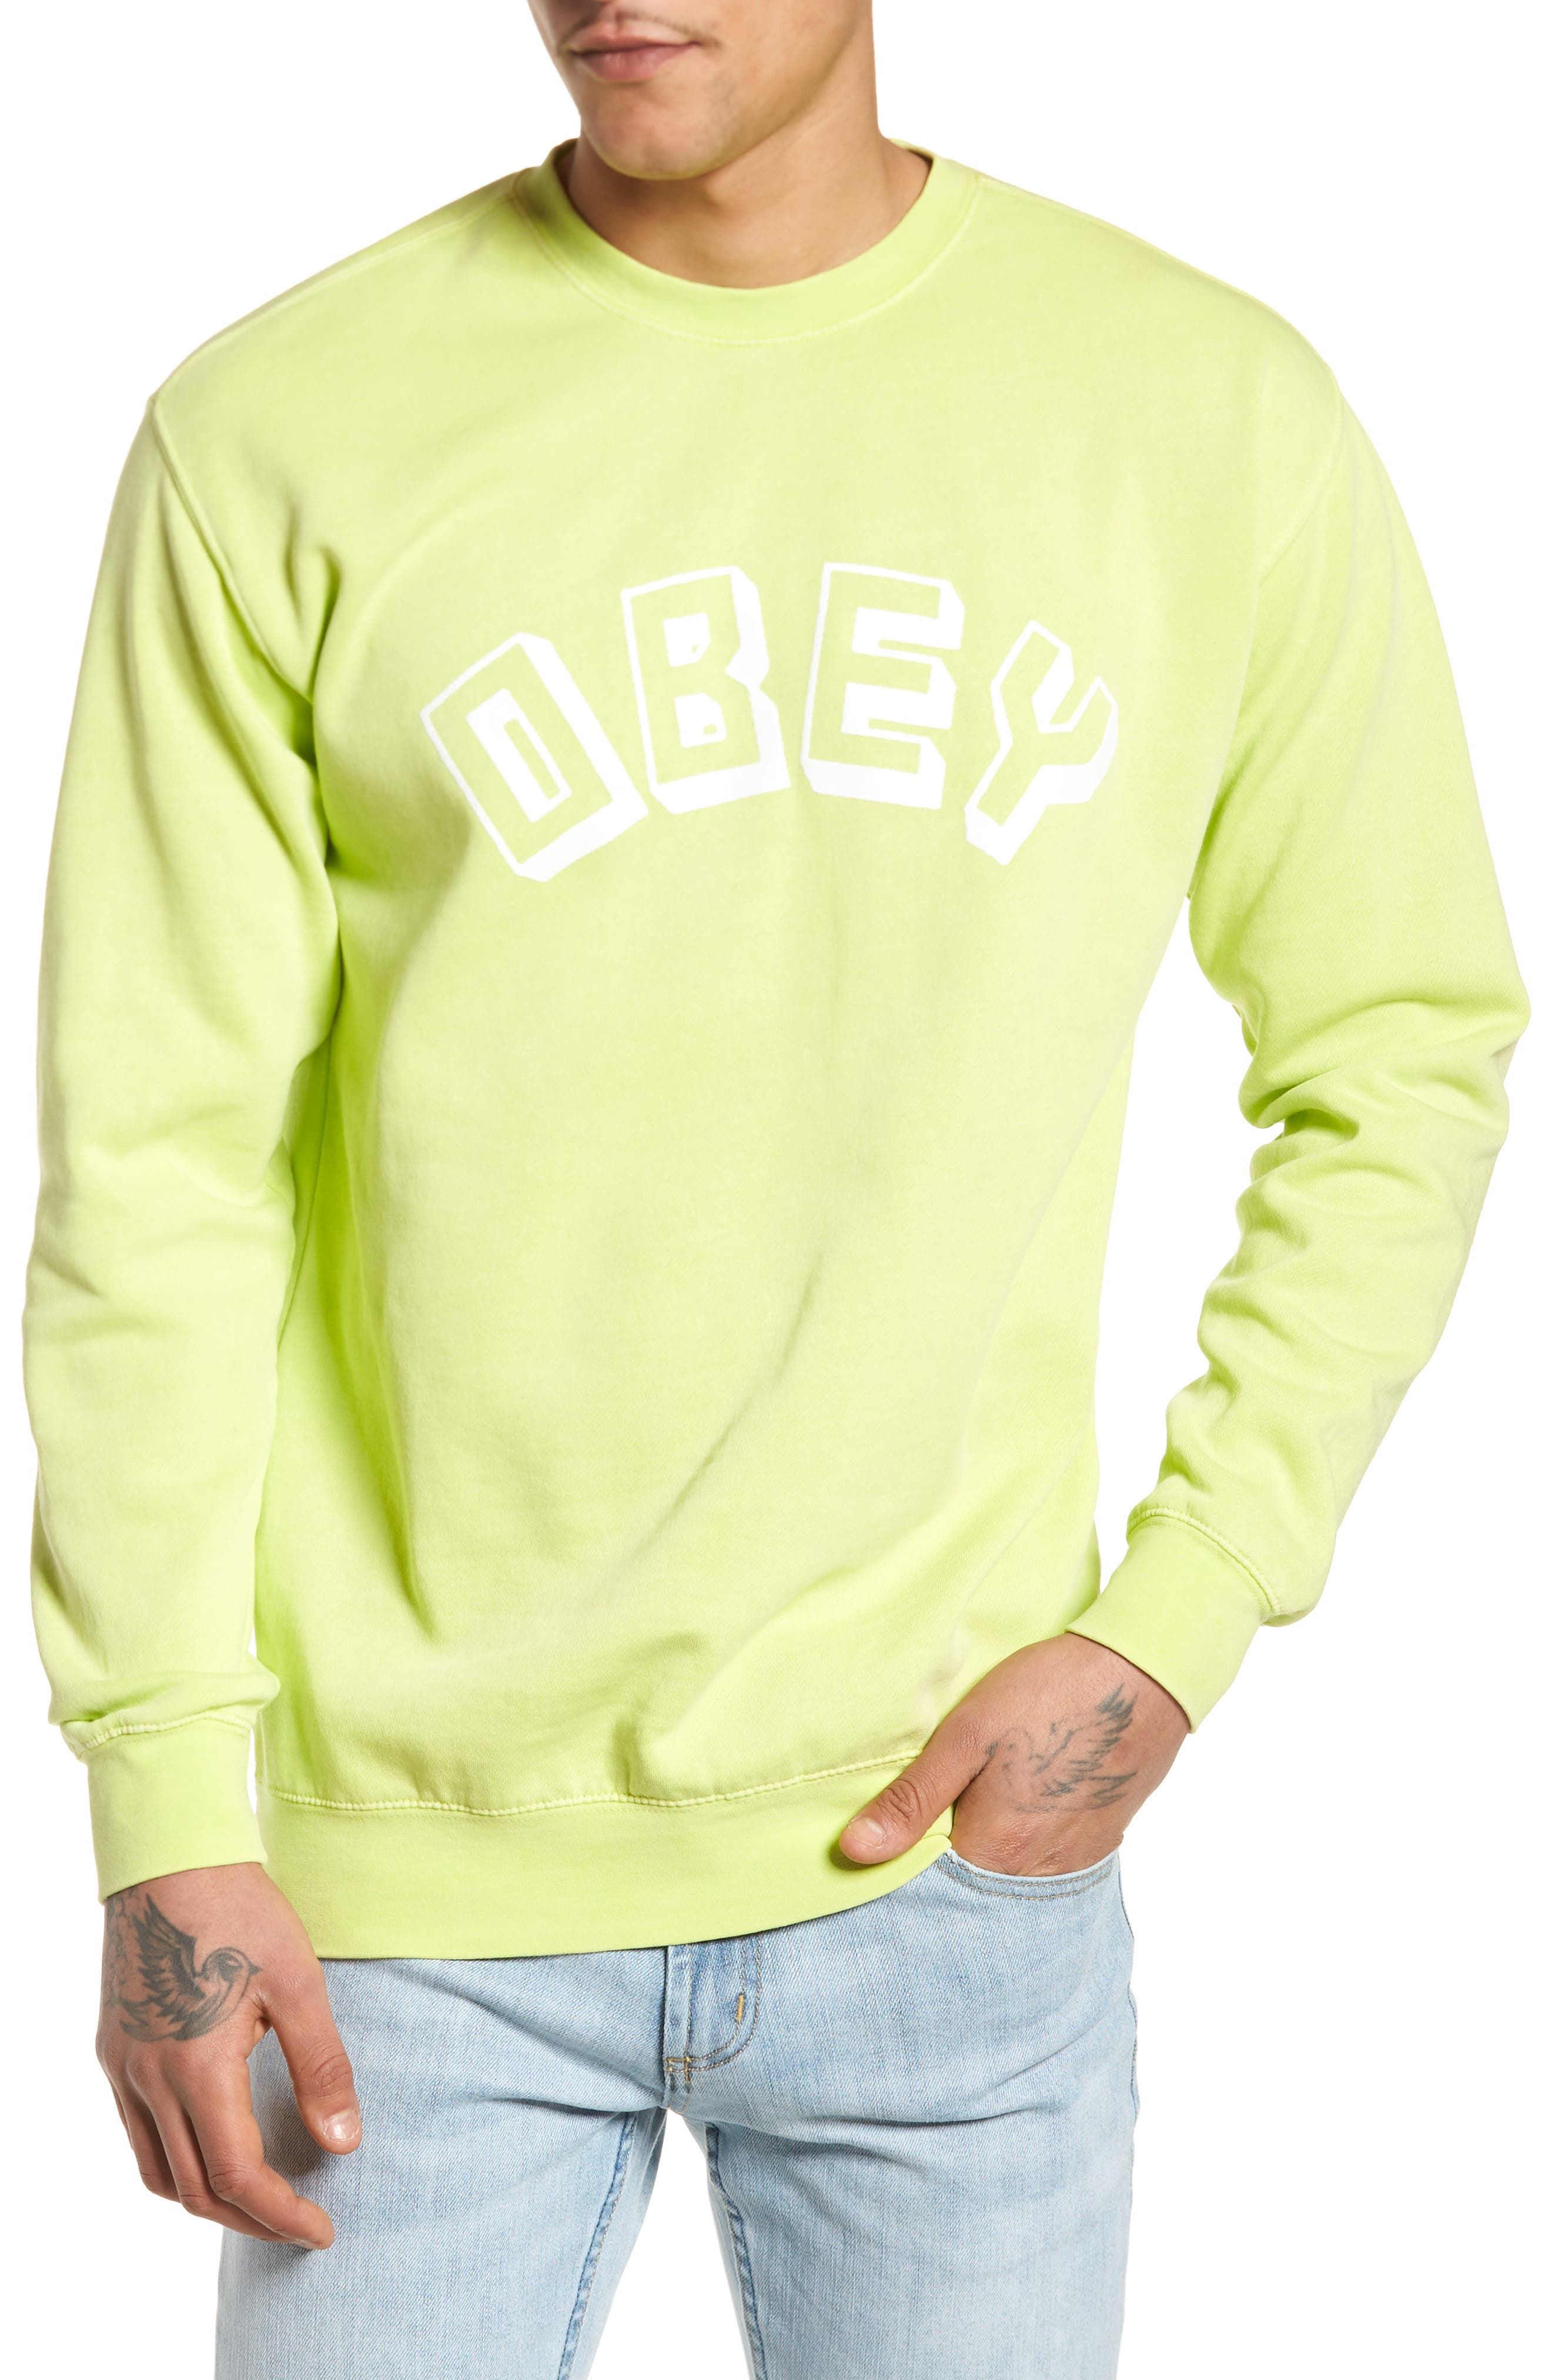 New World Sweatshirt,                             Main thumbnail 1, color,                             323